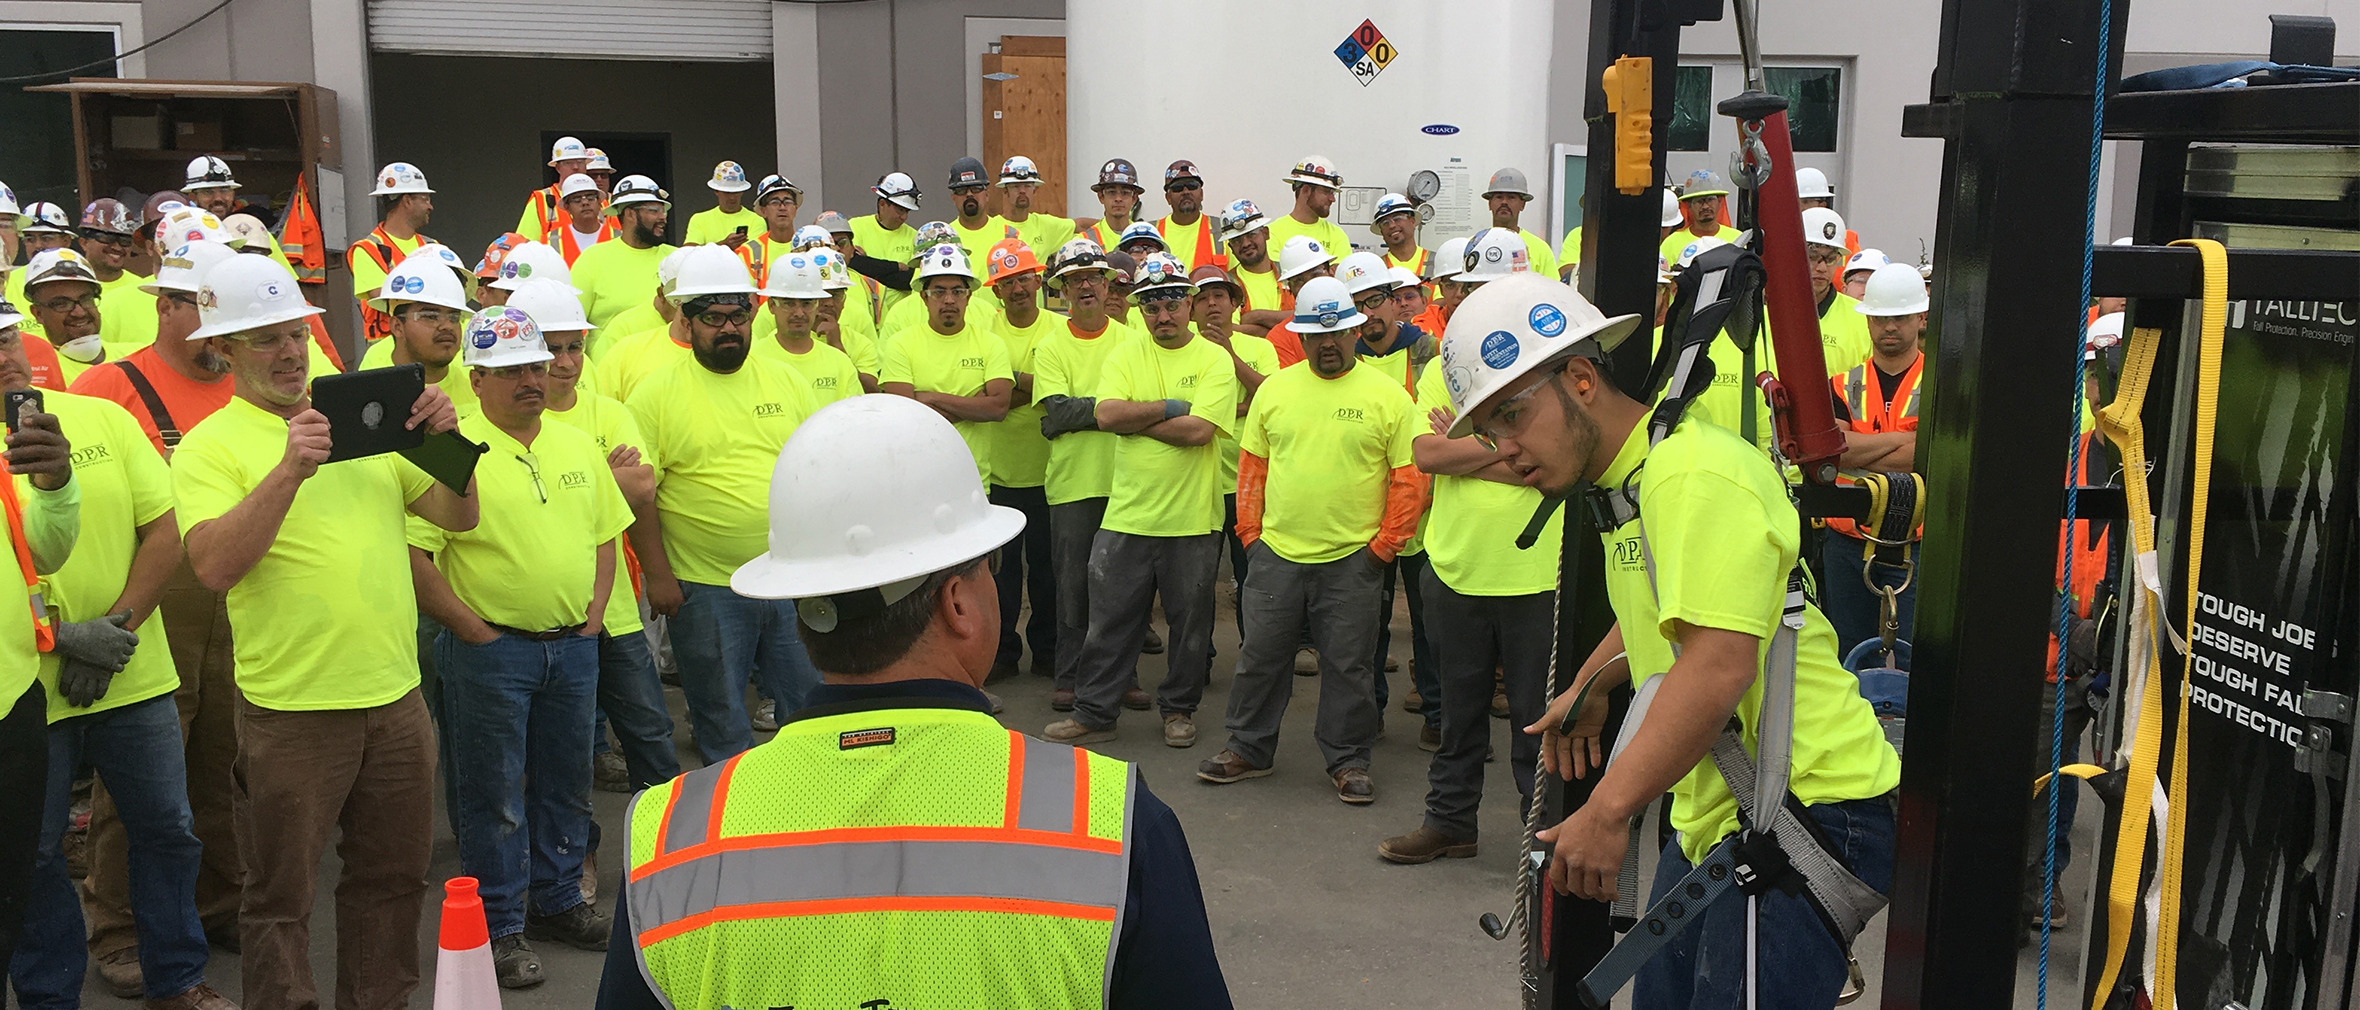 FallTech Regional Sales Manager Jim Ciandella teaching a group of construction workers the importance of trauma relief when suspended from a fall protection harness